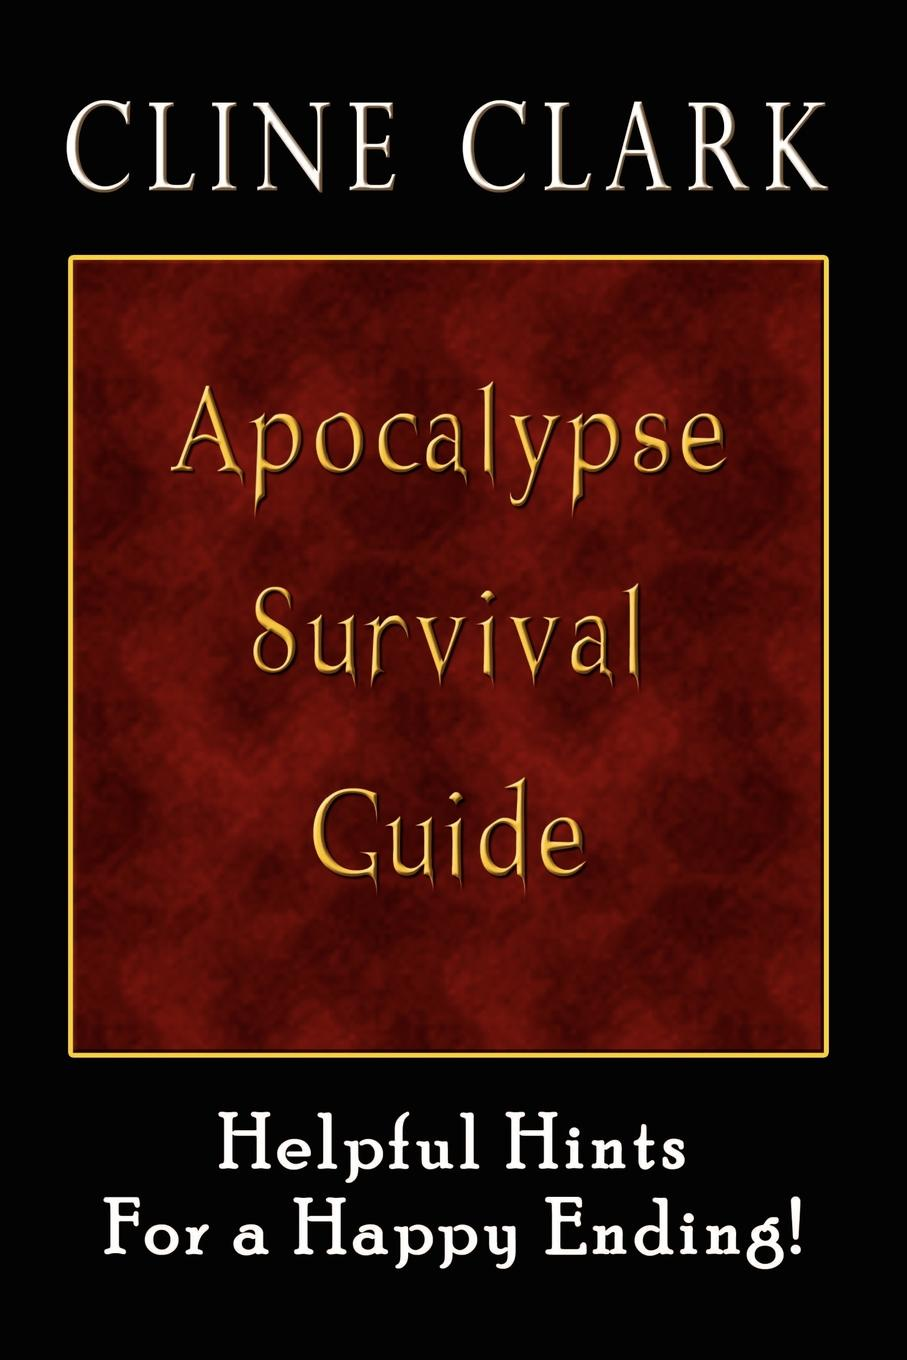 Cline Clark Apocalypse Survival Guide. Helpful Hints for a Happy Ending arnold haultain hints for lovers